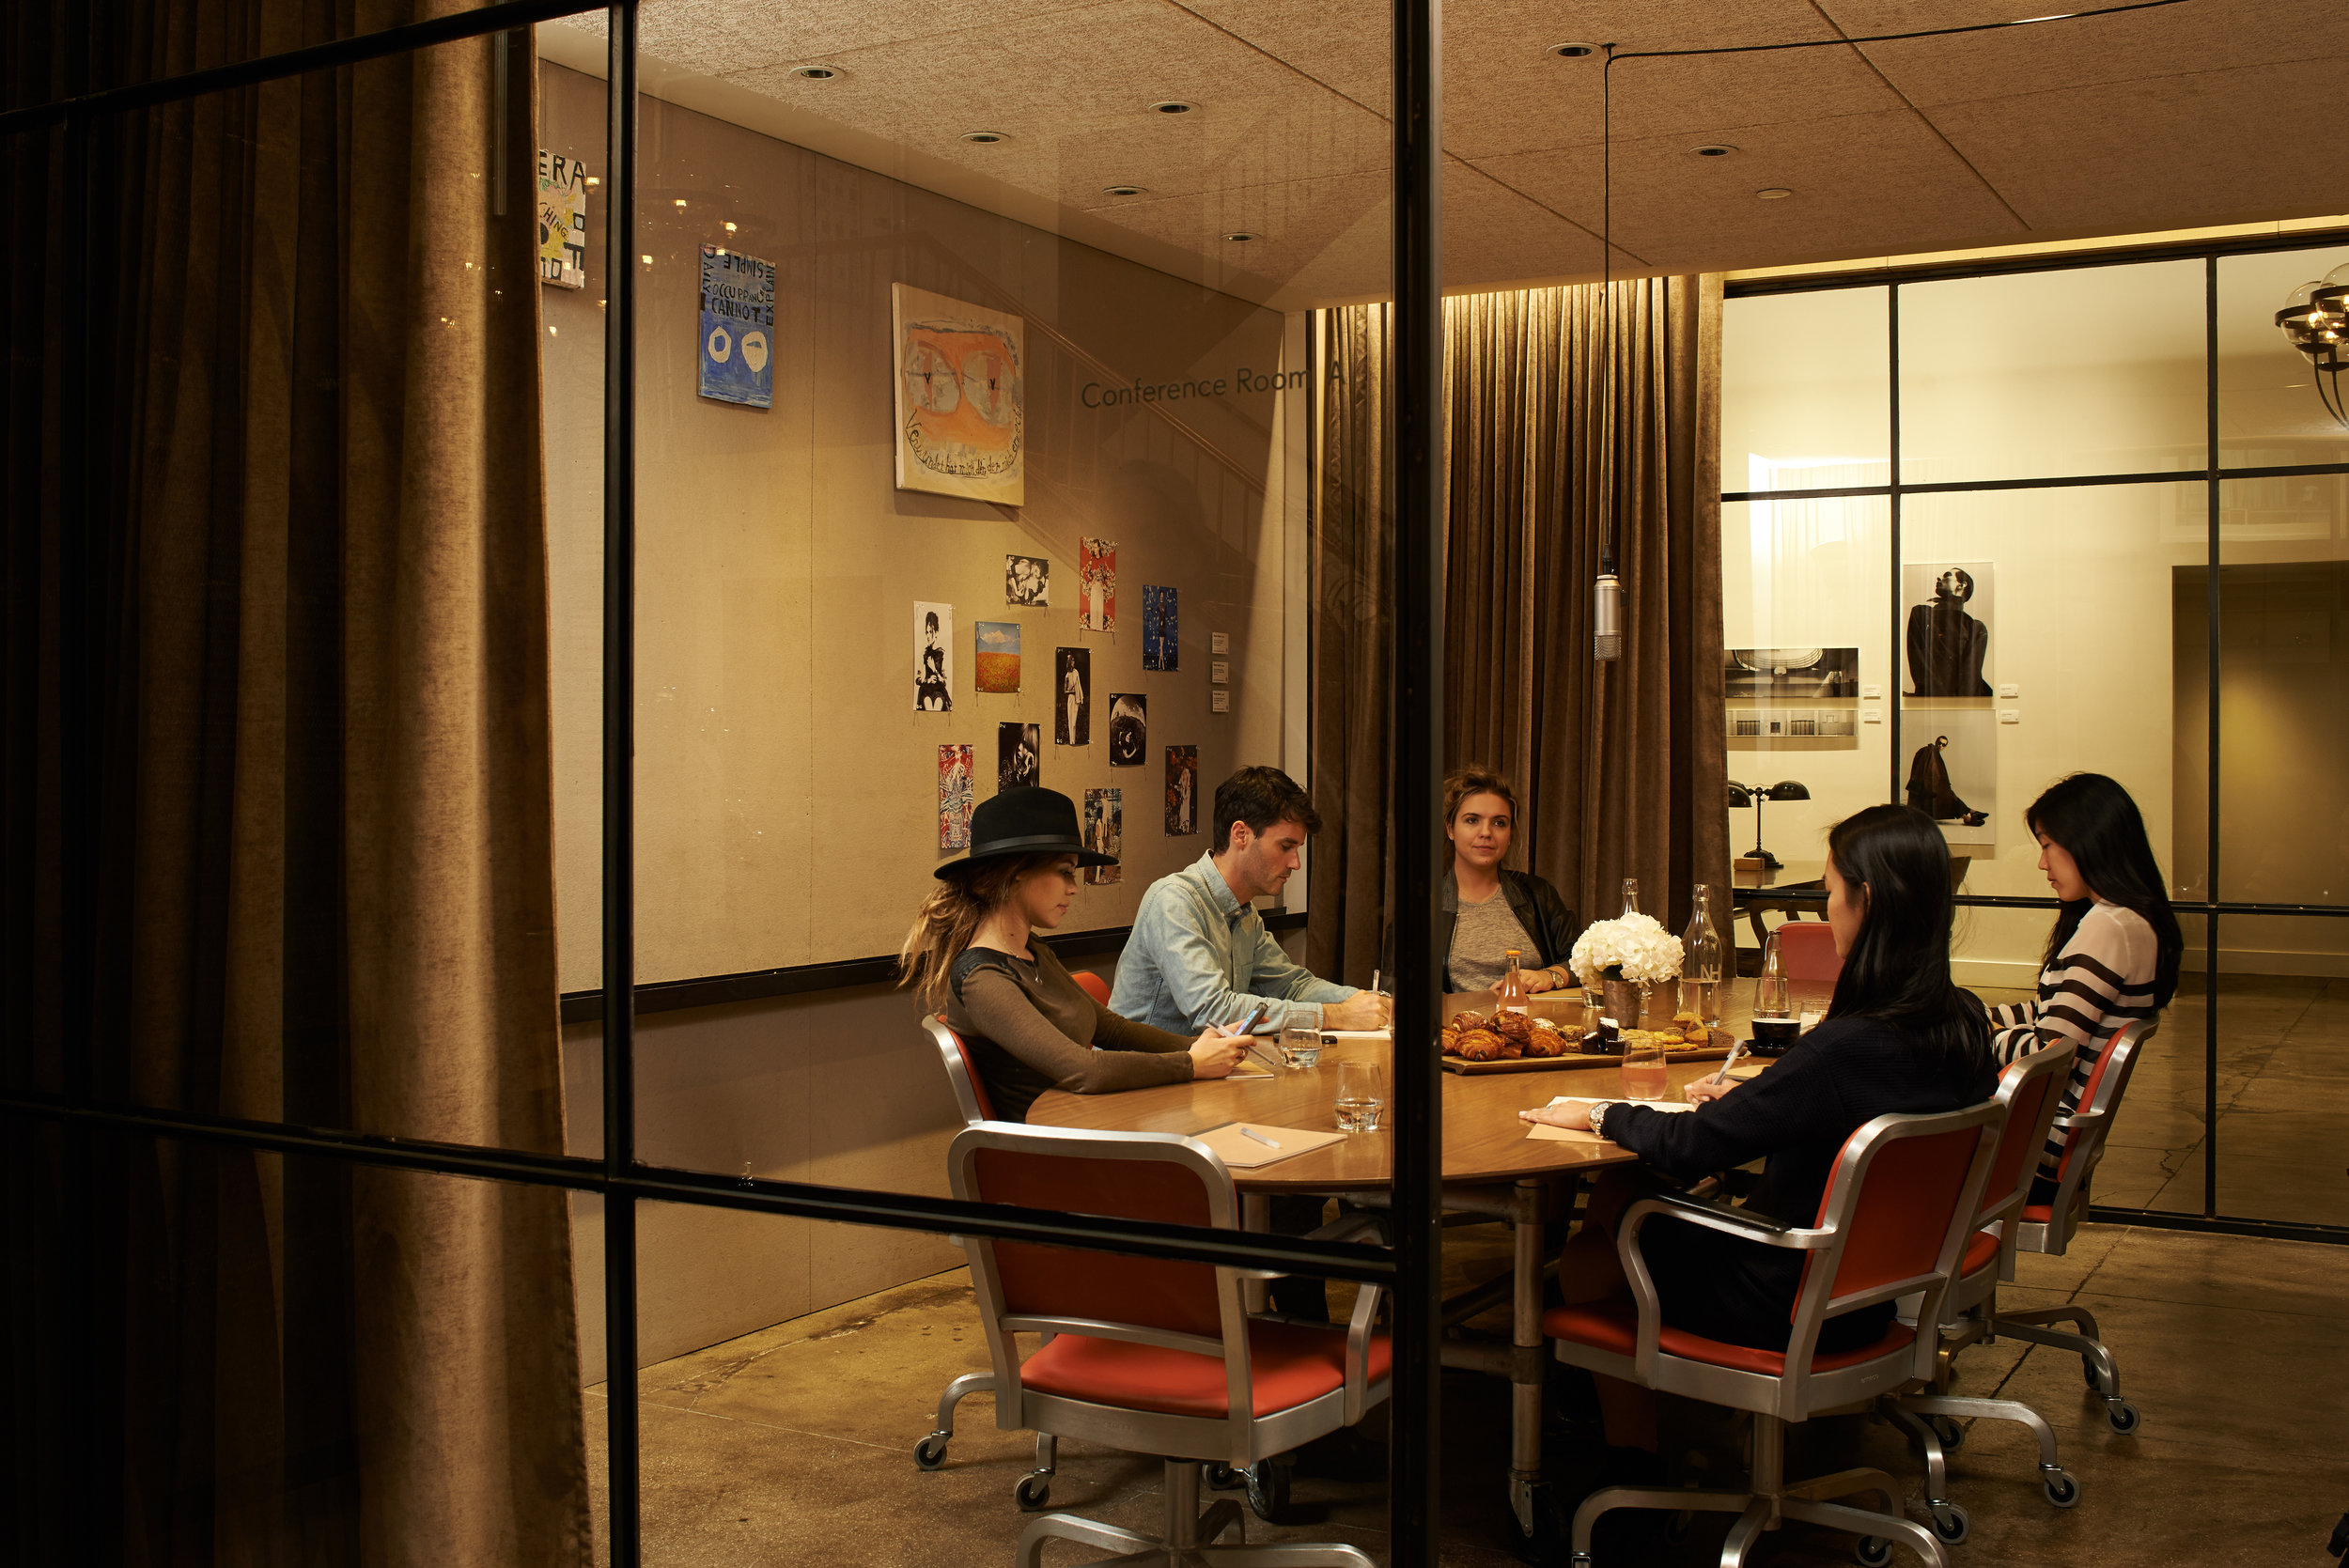 Conference_Room_A_384.jpg